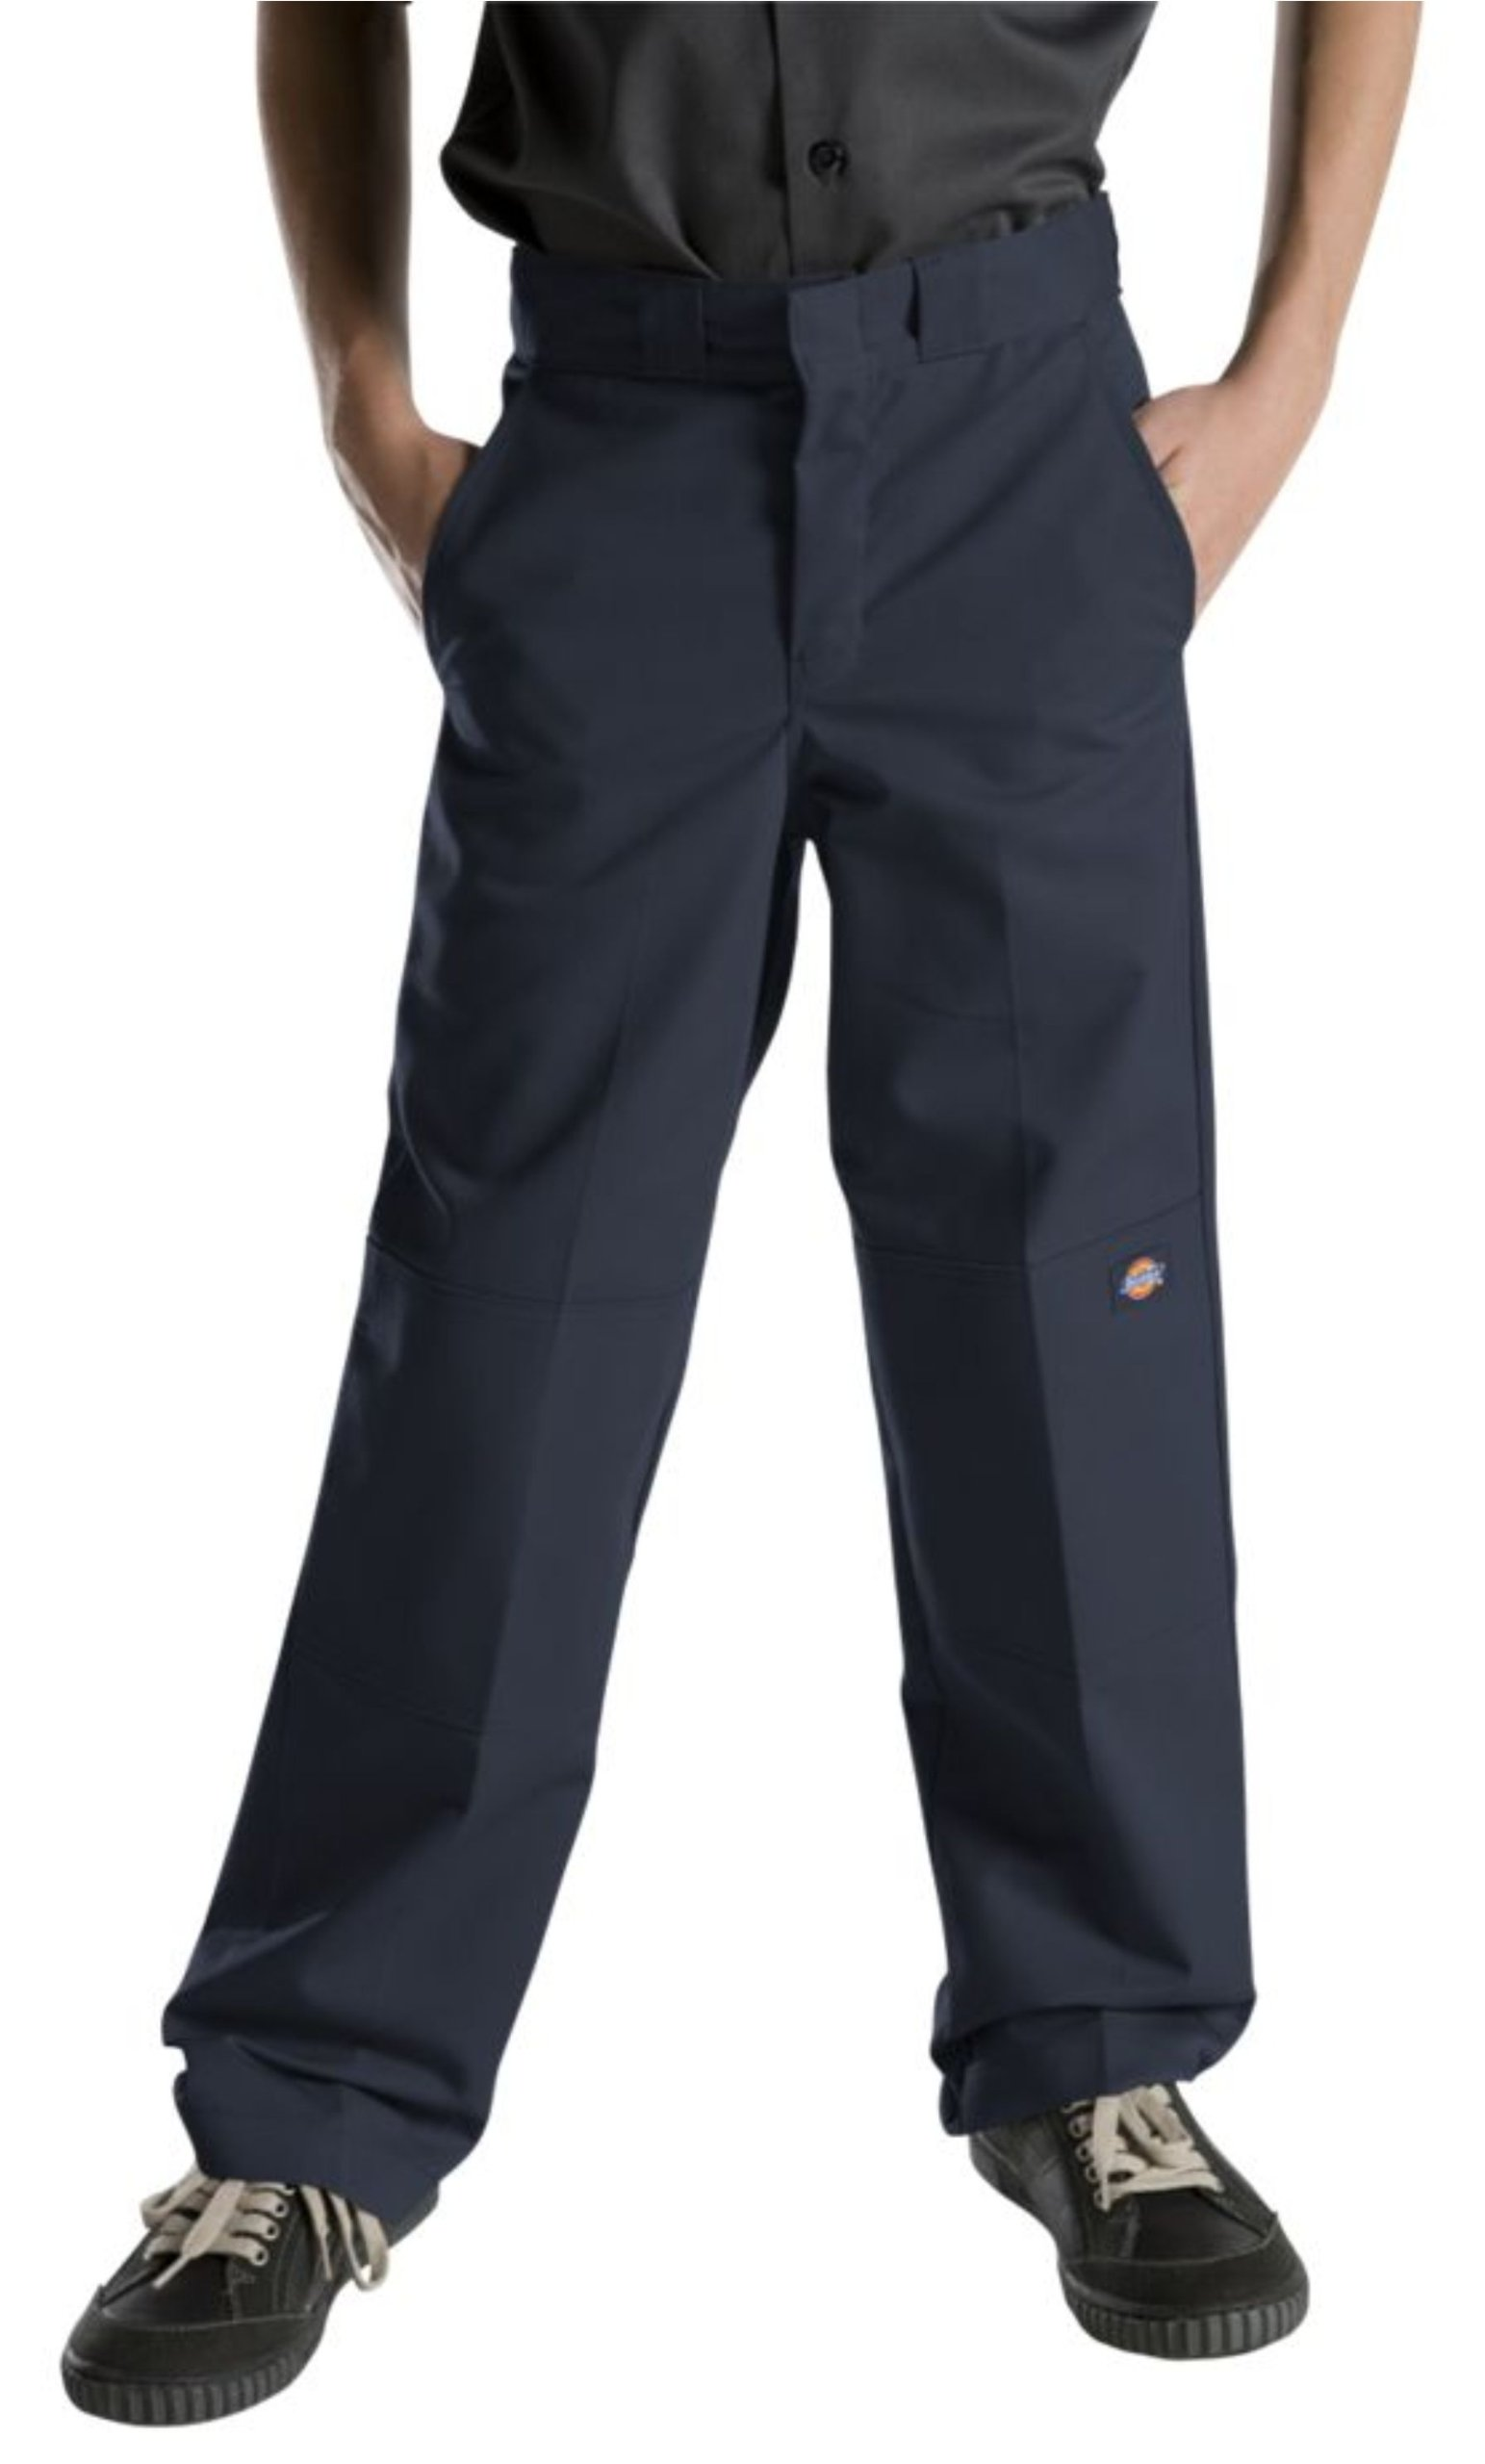 Dickies Big Boys' Flex Waist Double Knee Pant, Dark Navy, 16 by dickies